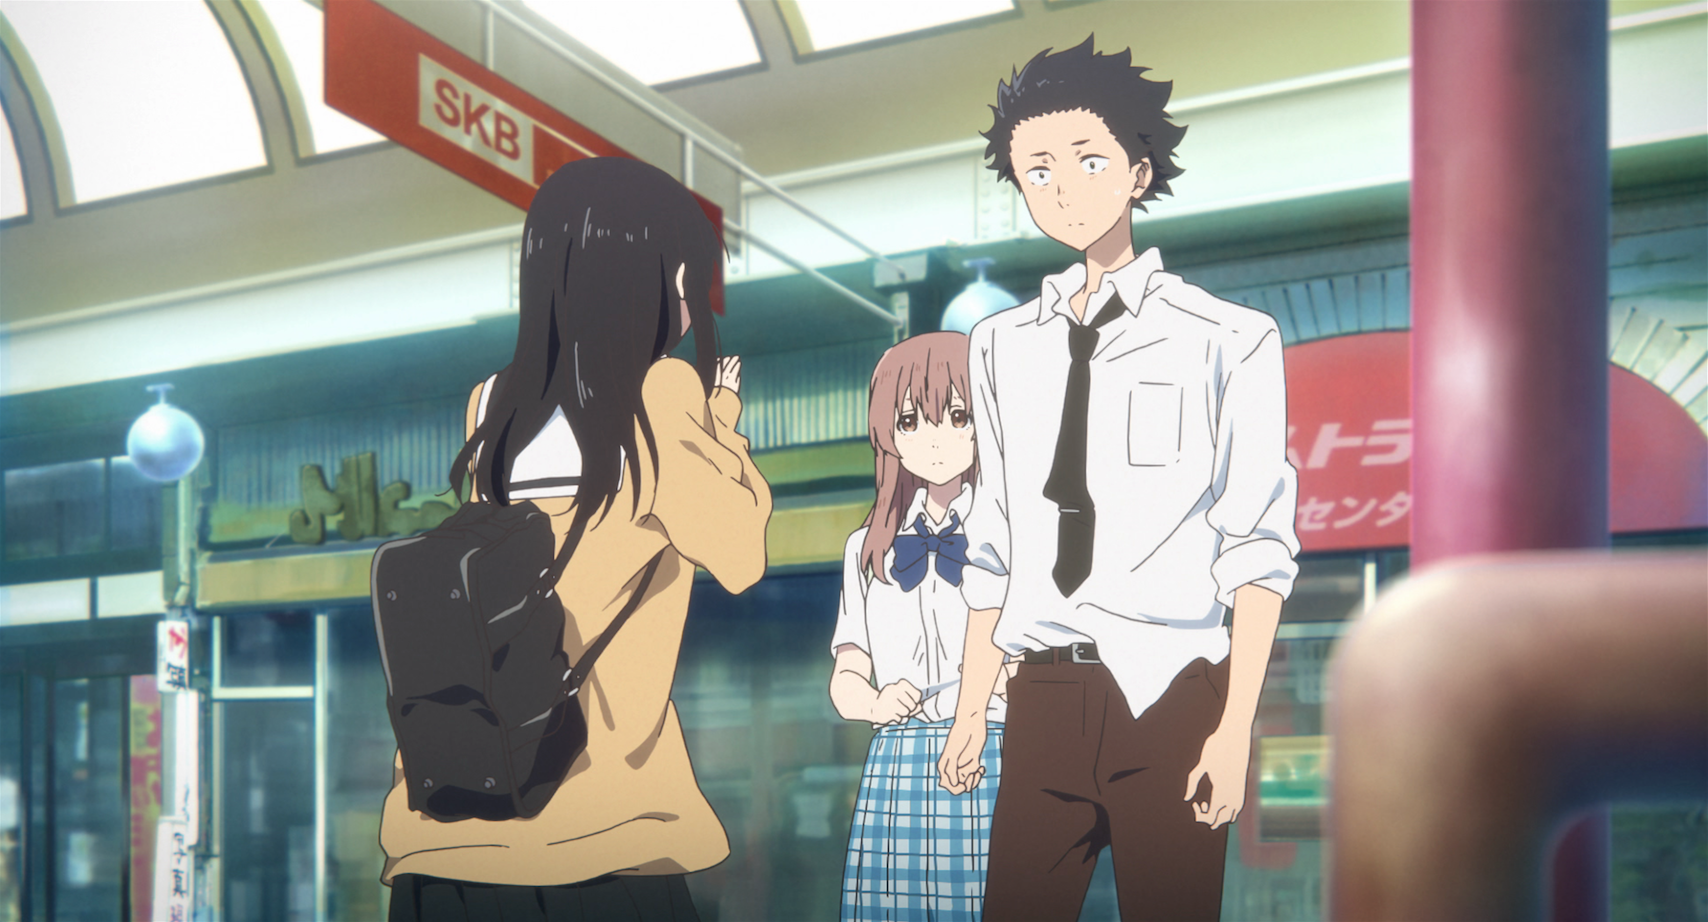 A silent voice fetch publicity for Apartment japanese movie